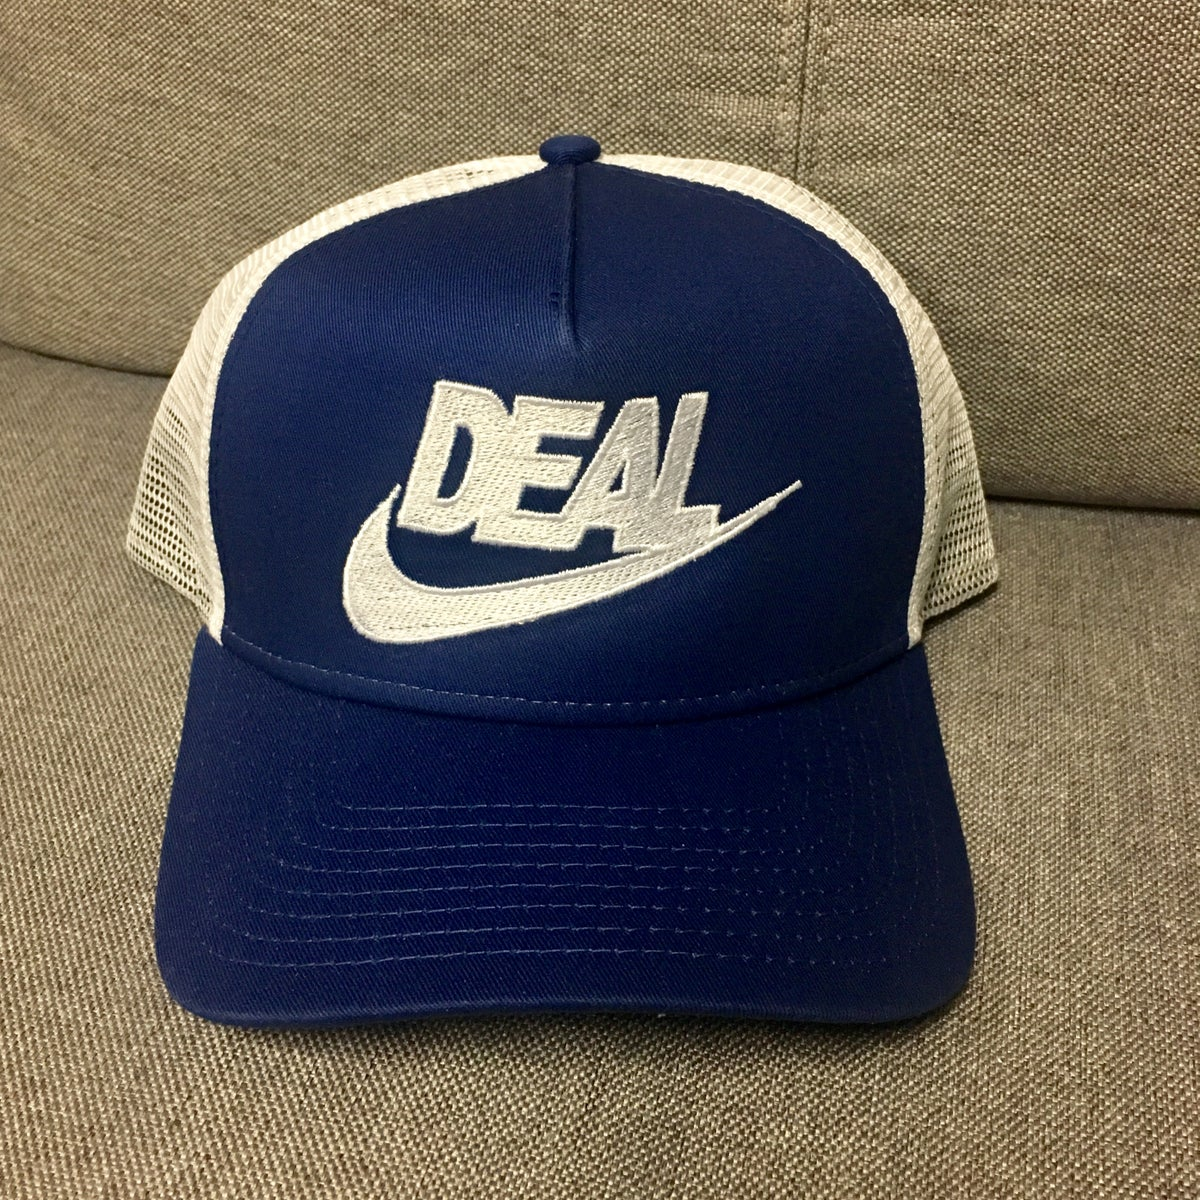 Deal Embroidered Snapback Trucker Cap!